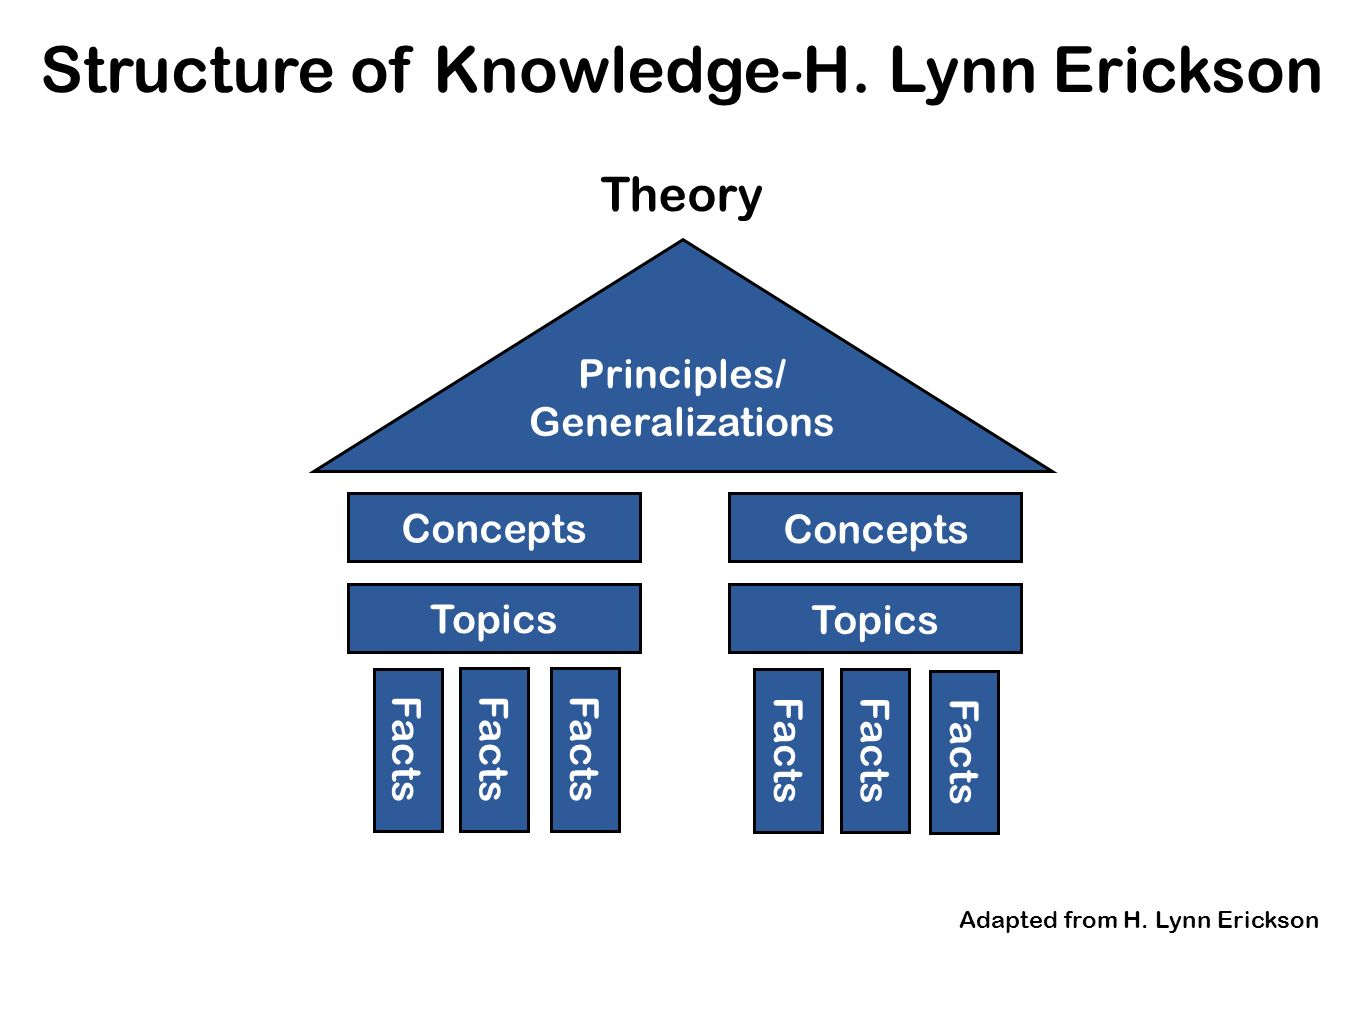 Structure of Knowledge-H. Lynn Erickson